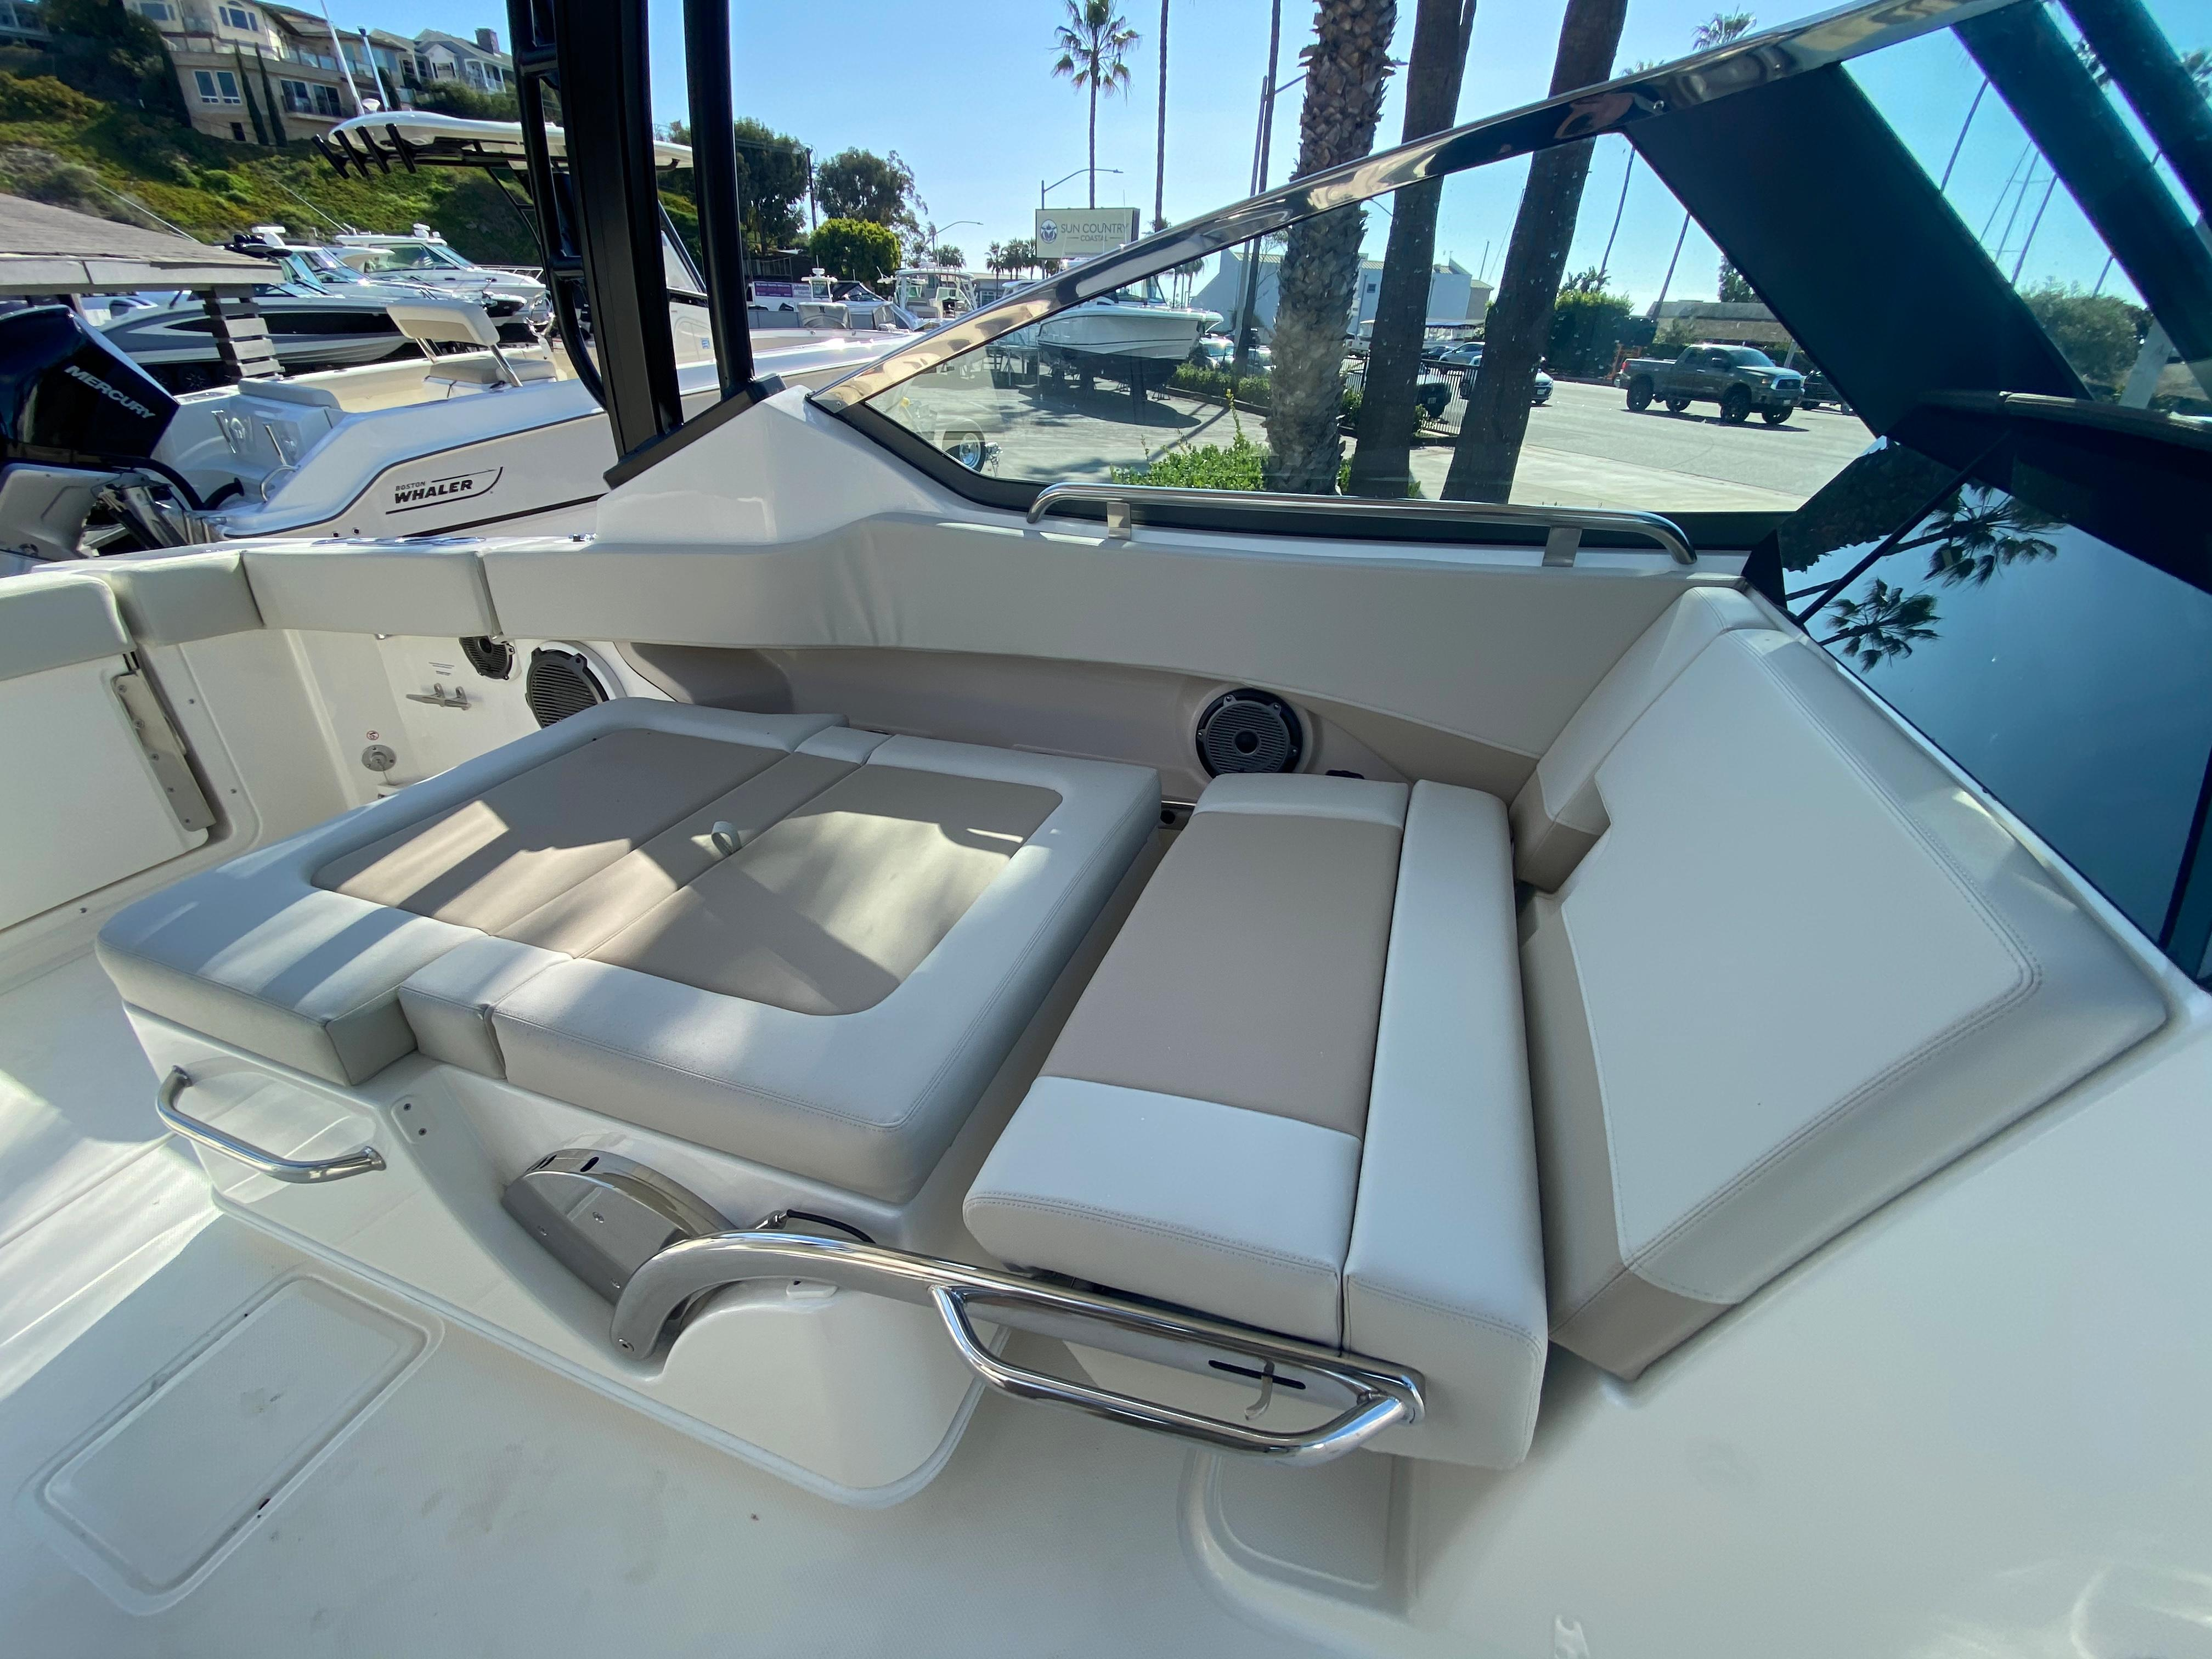 2021 Boston Whaler 240 Vantage #BW1419L inventory image at Sun Country Coastal in Newport Beach